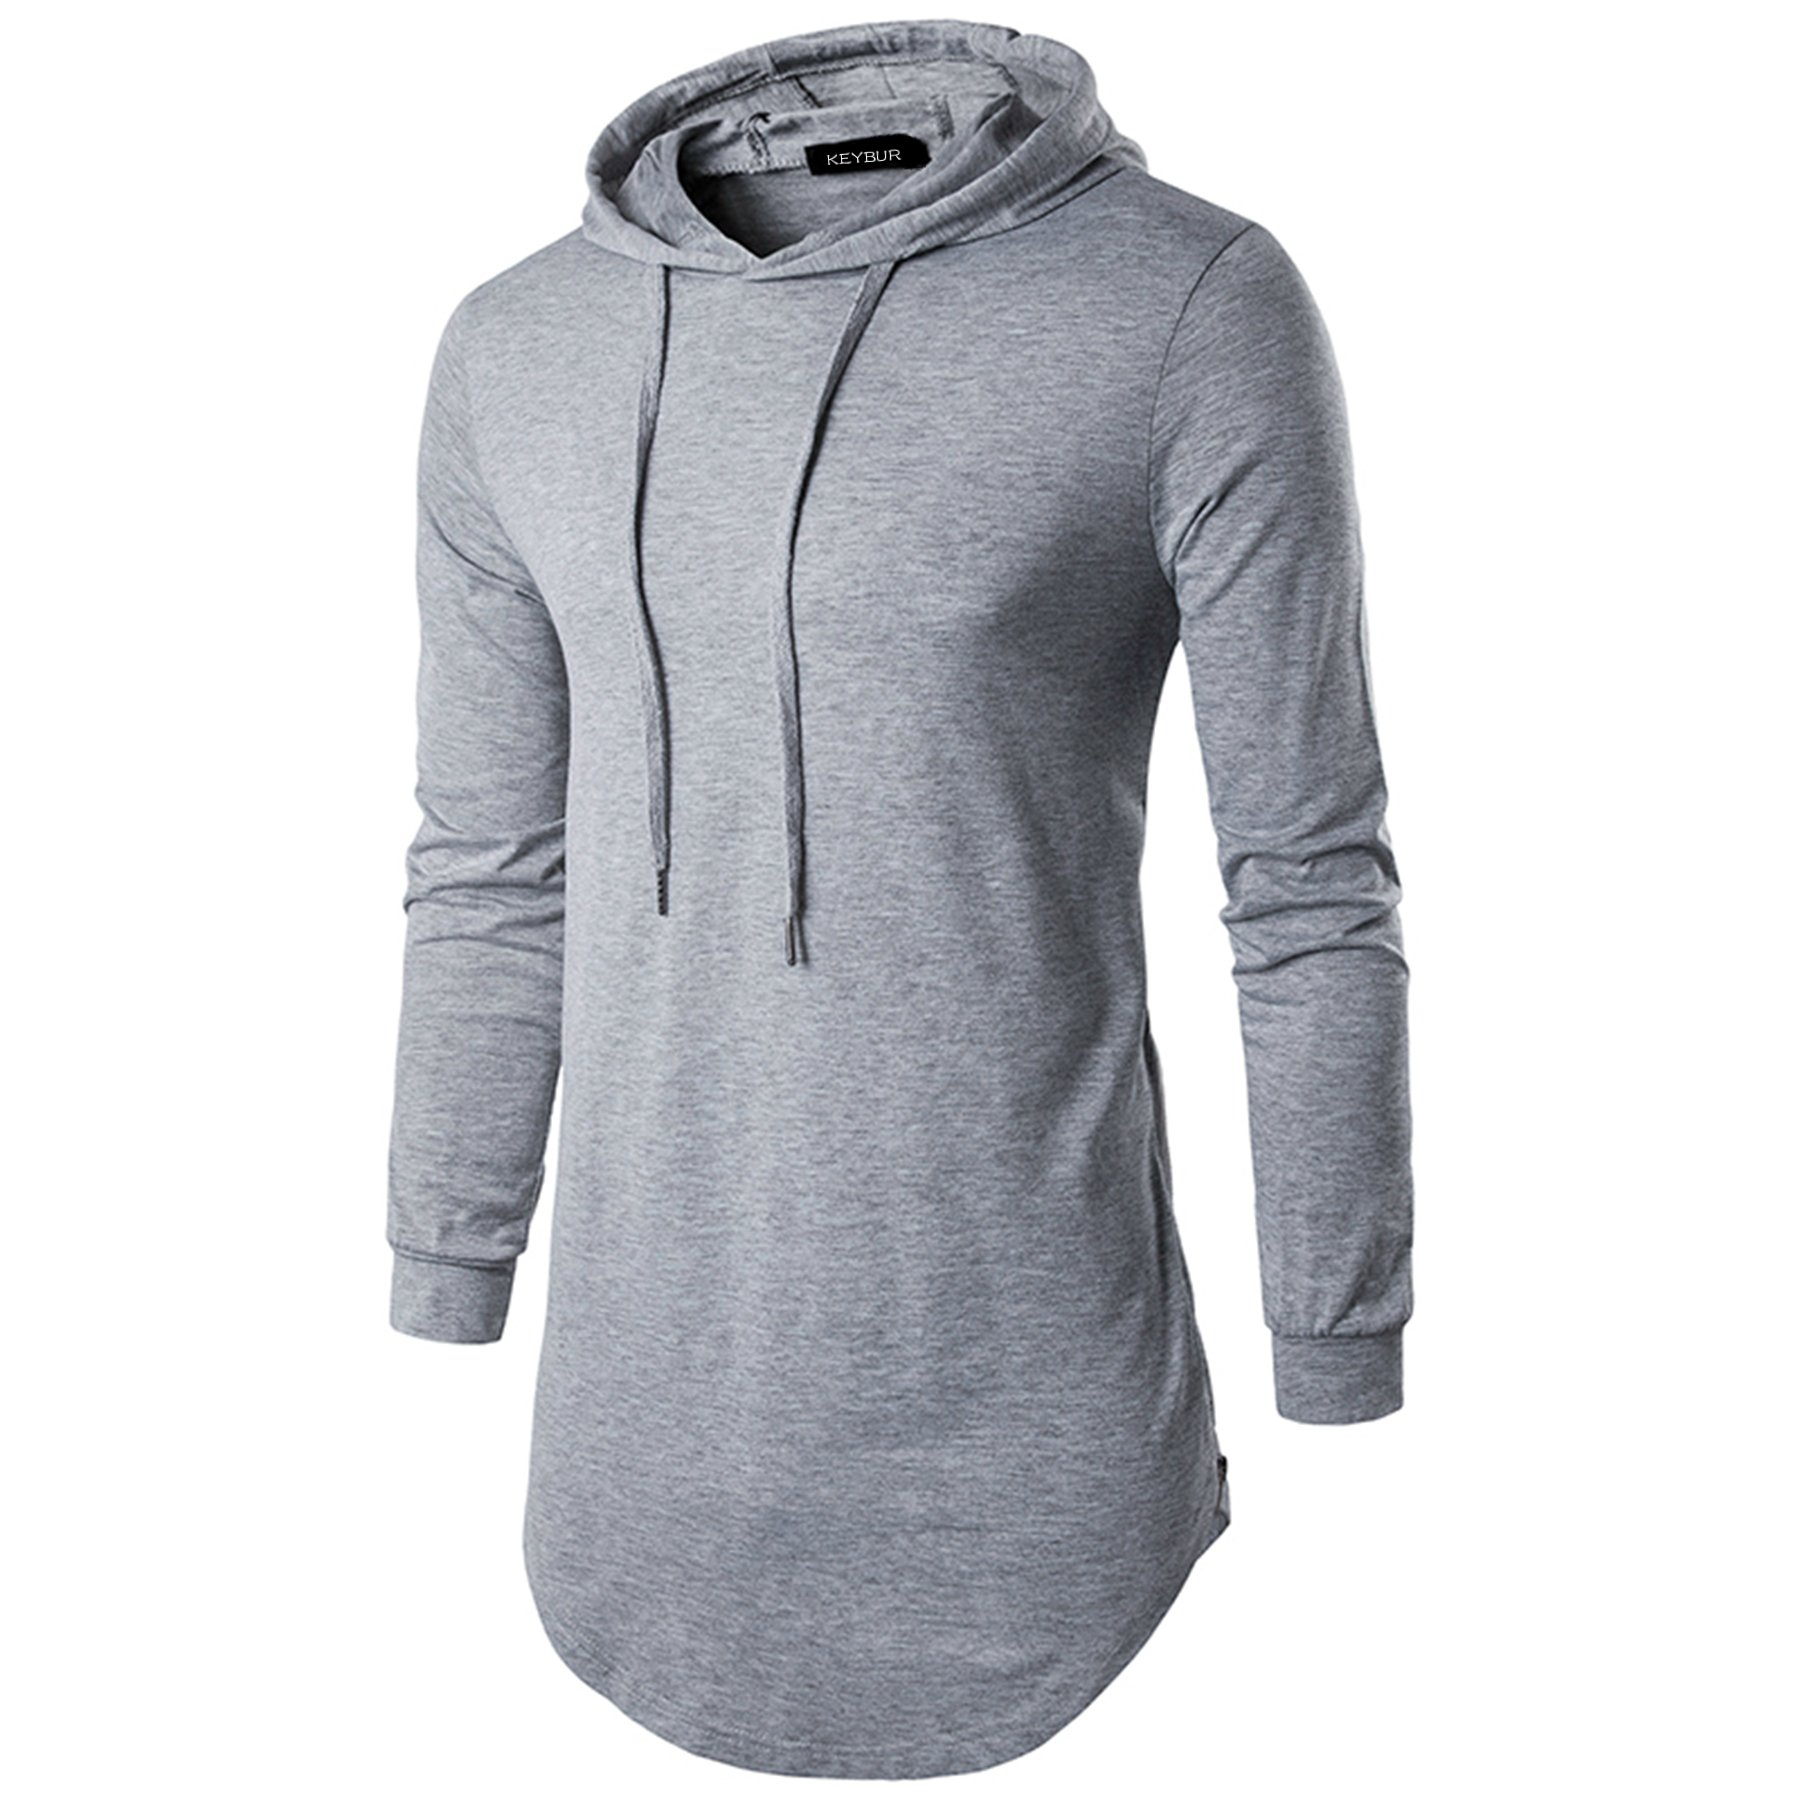 Keybur Mens Hipster Hip Hop Longline Classic Pullover Long Sleeve Hoodies Fashion Sweatshirt (M, Grey)